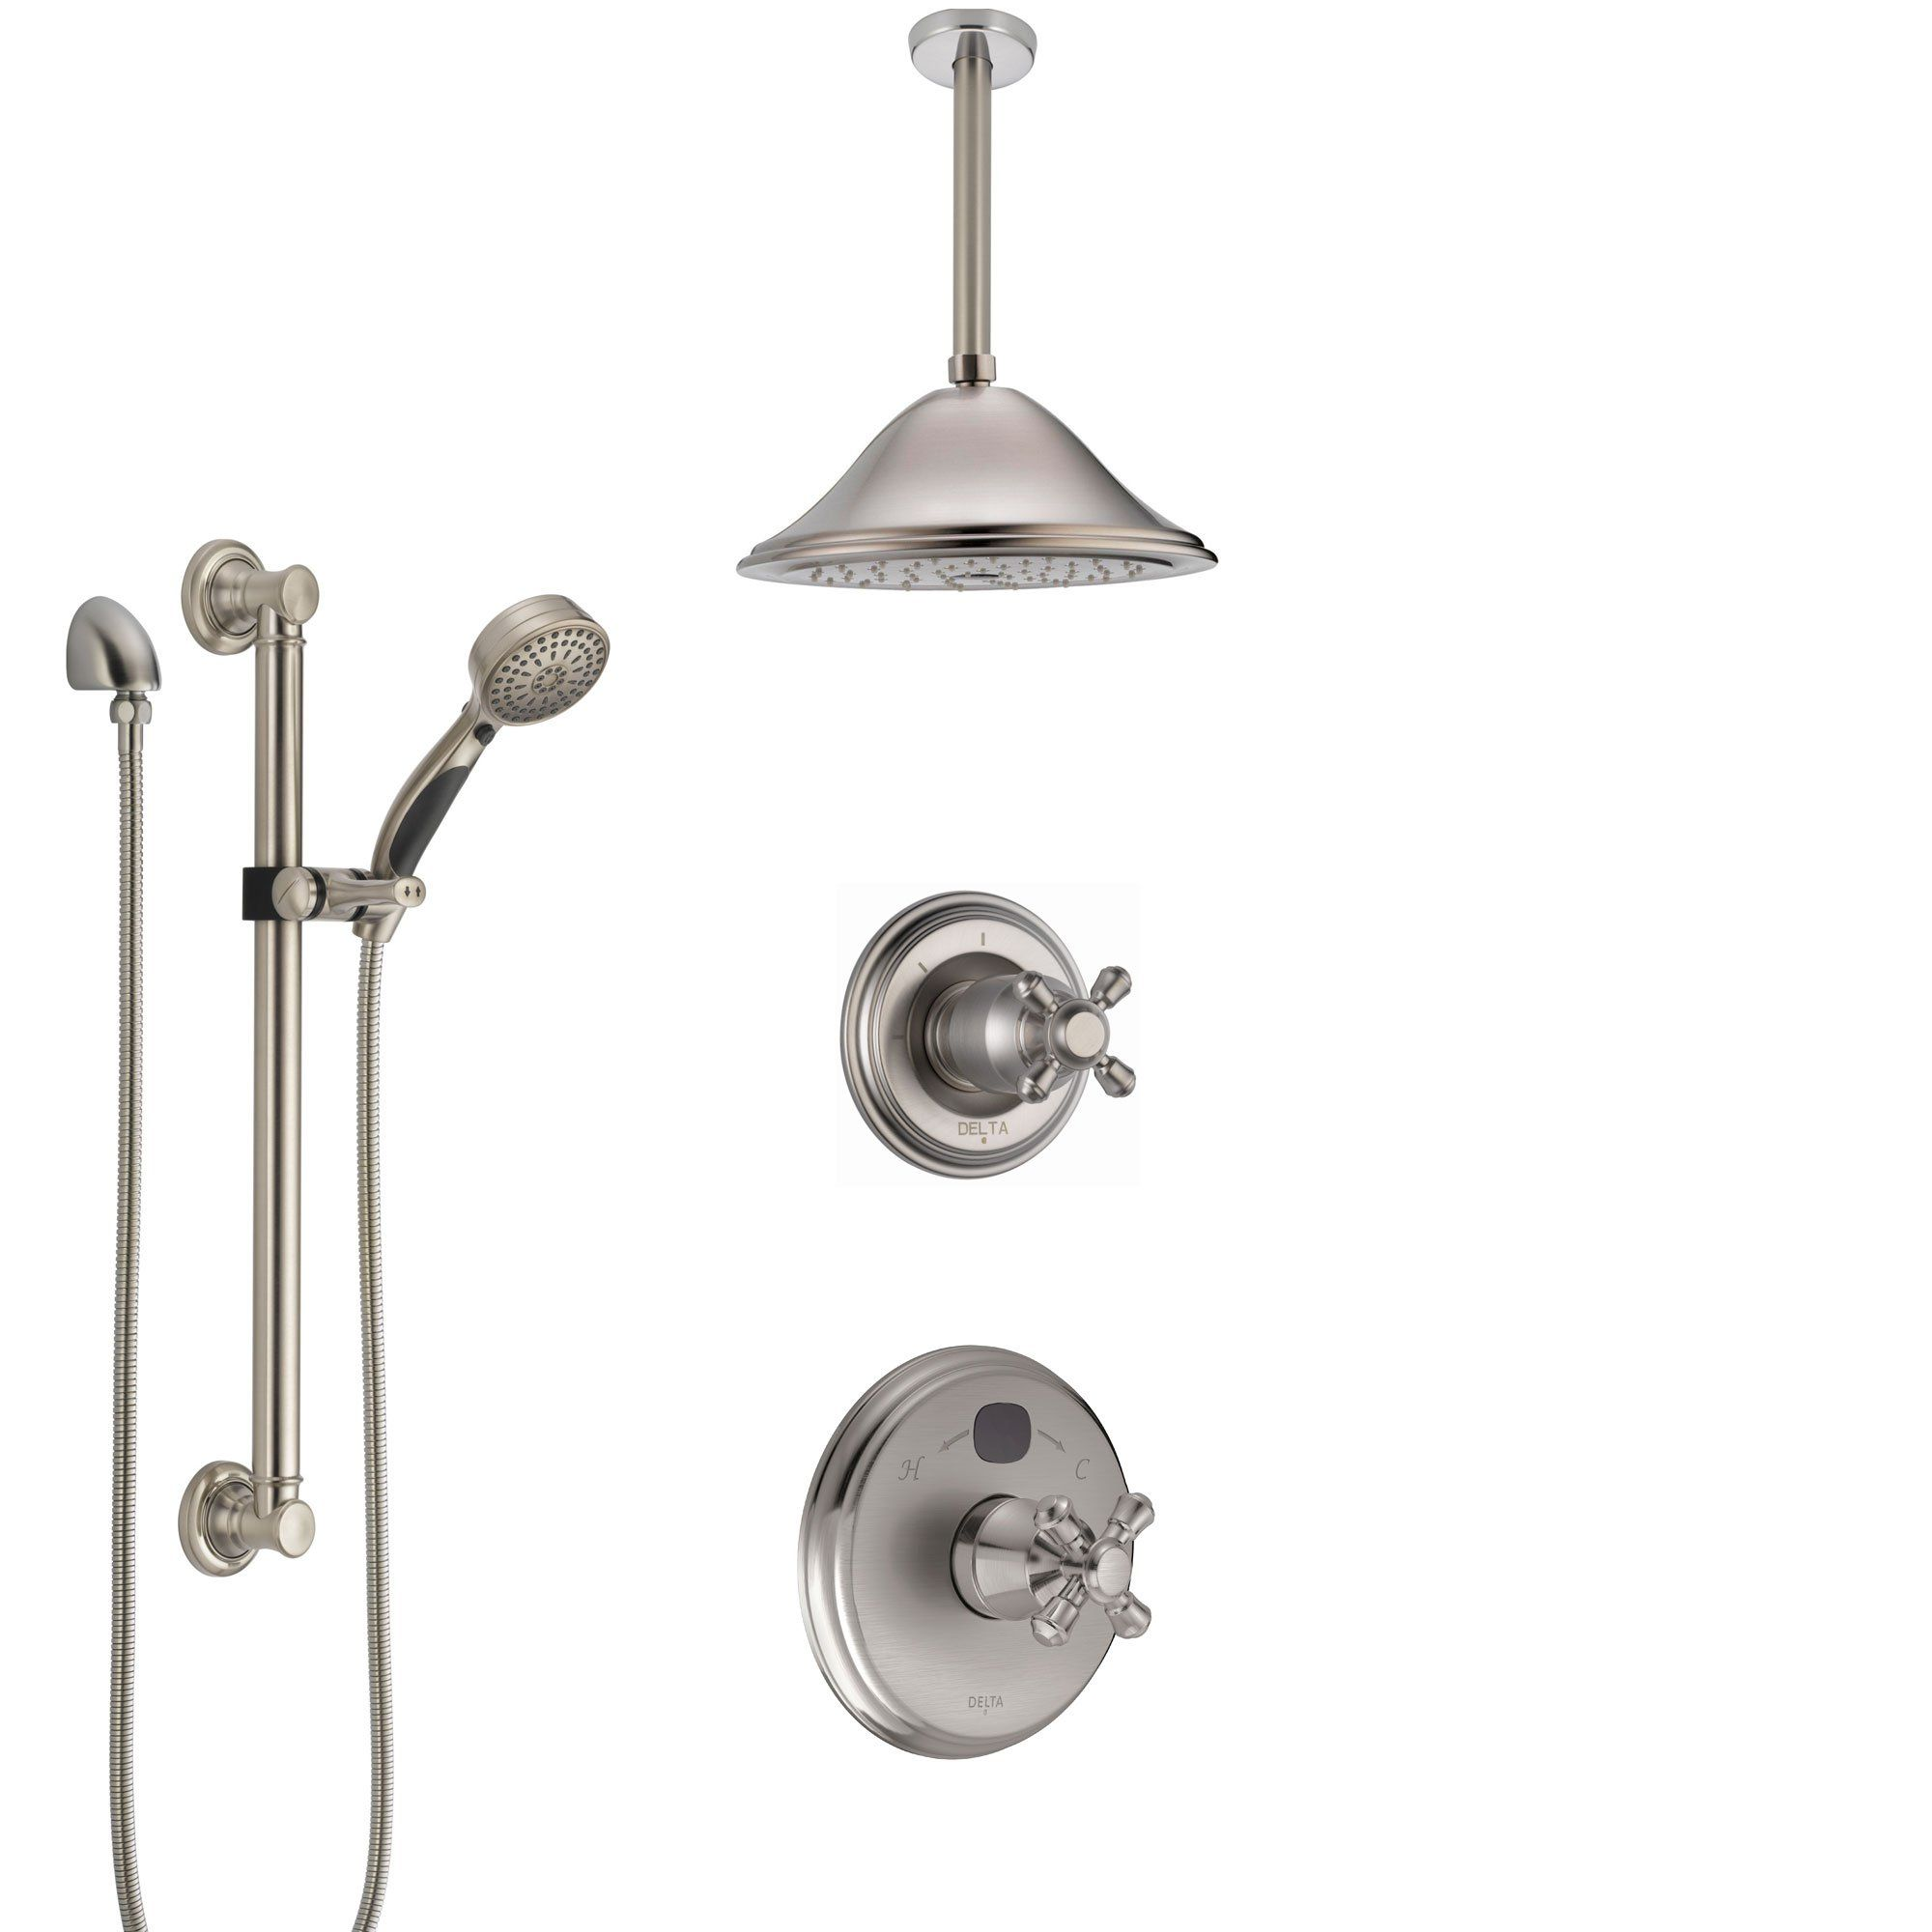 Delta Cassidy Stainless Steel Finish Shower System With Temp2o